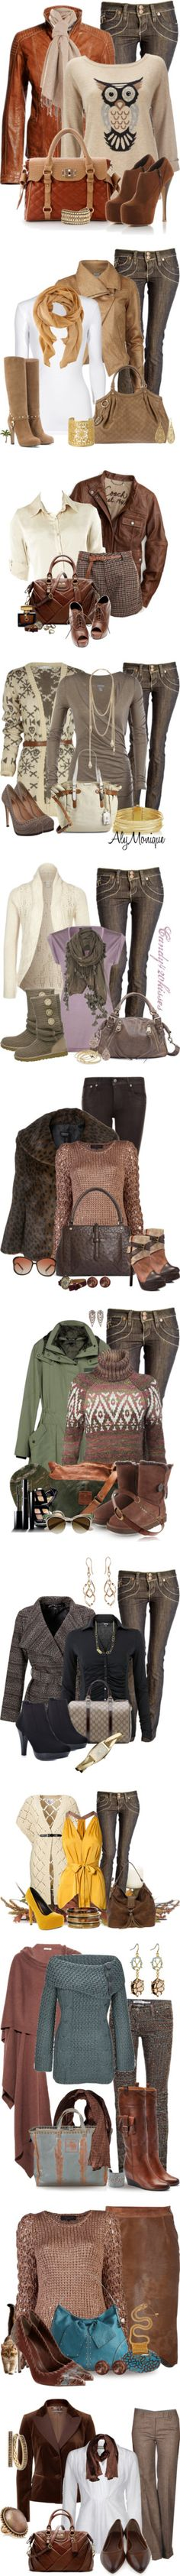 """Pick One"" by jackie22 ❤ liked on Polyvore"